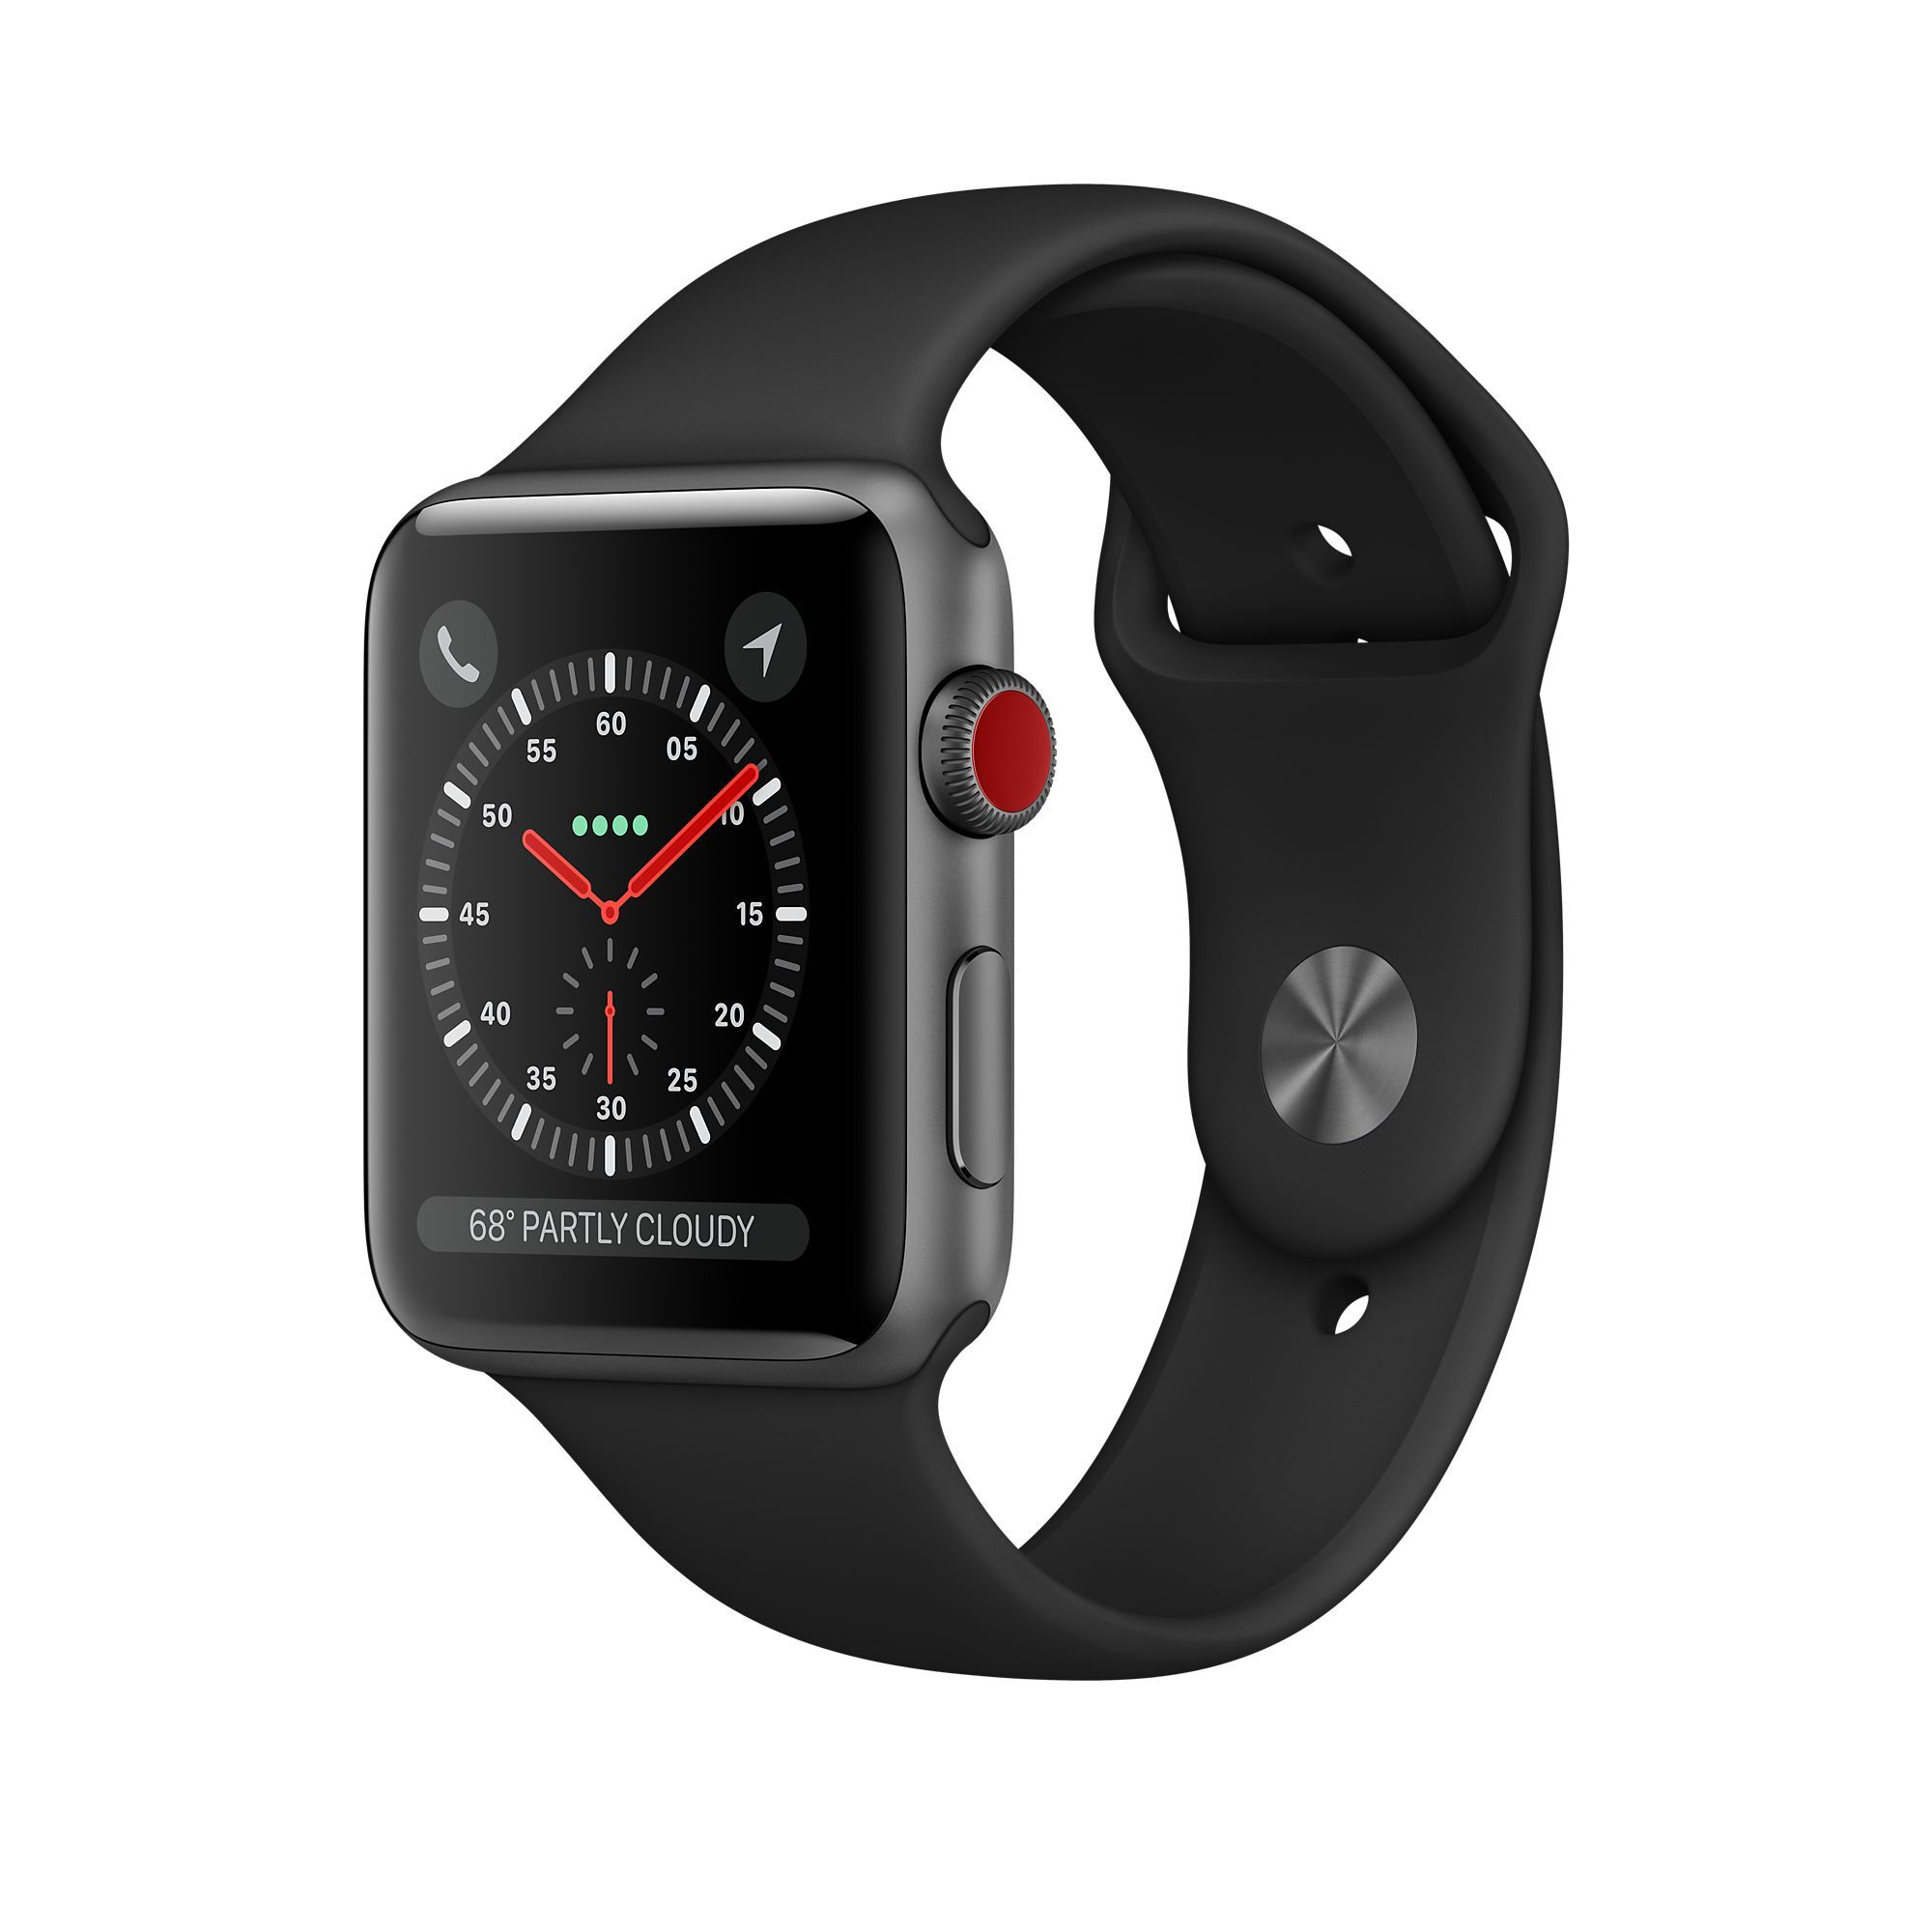 Apple Watch Series 3 GPS + Cellular 42mm, Space Gray Aluminum - Black Sport Band